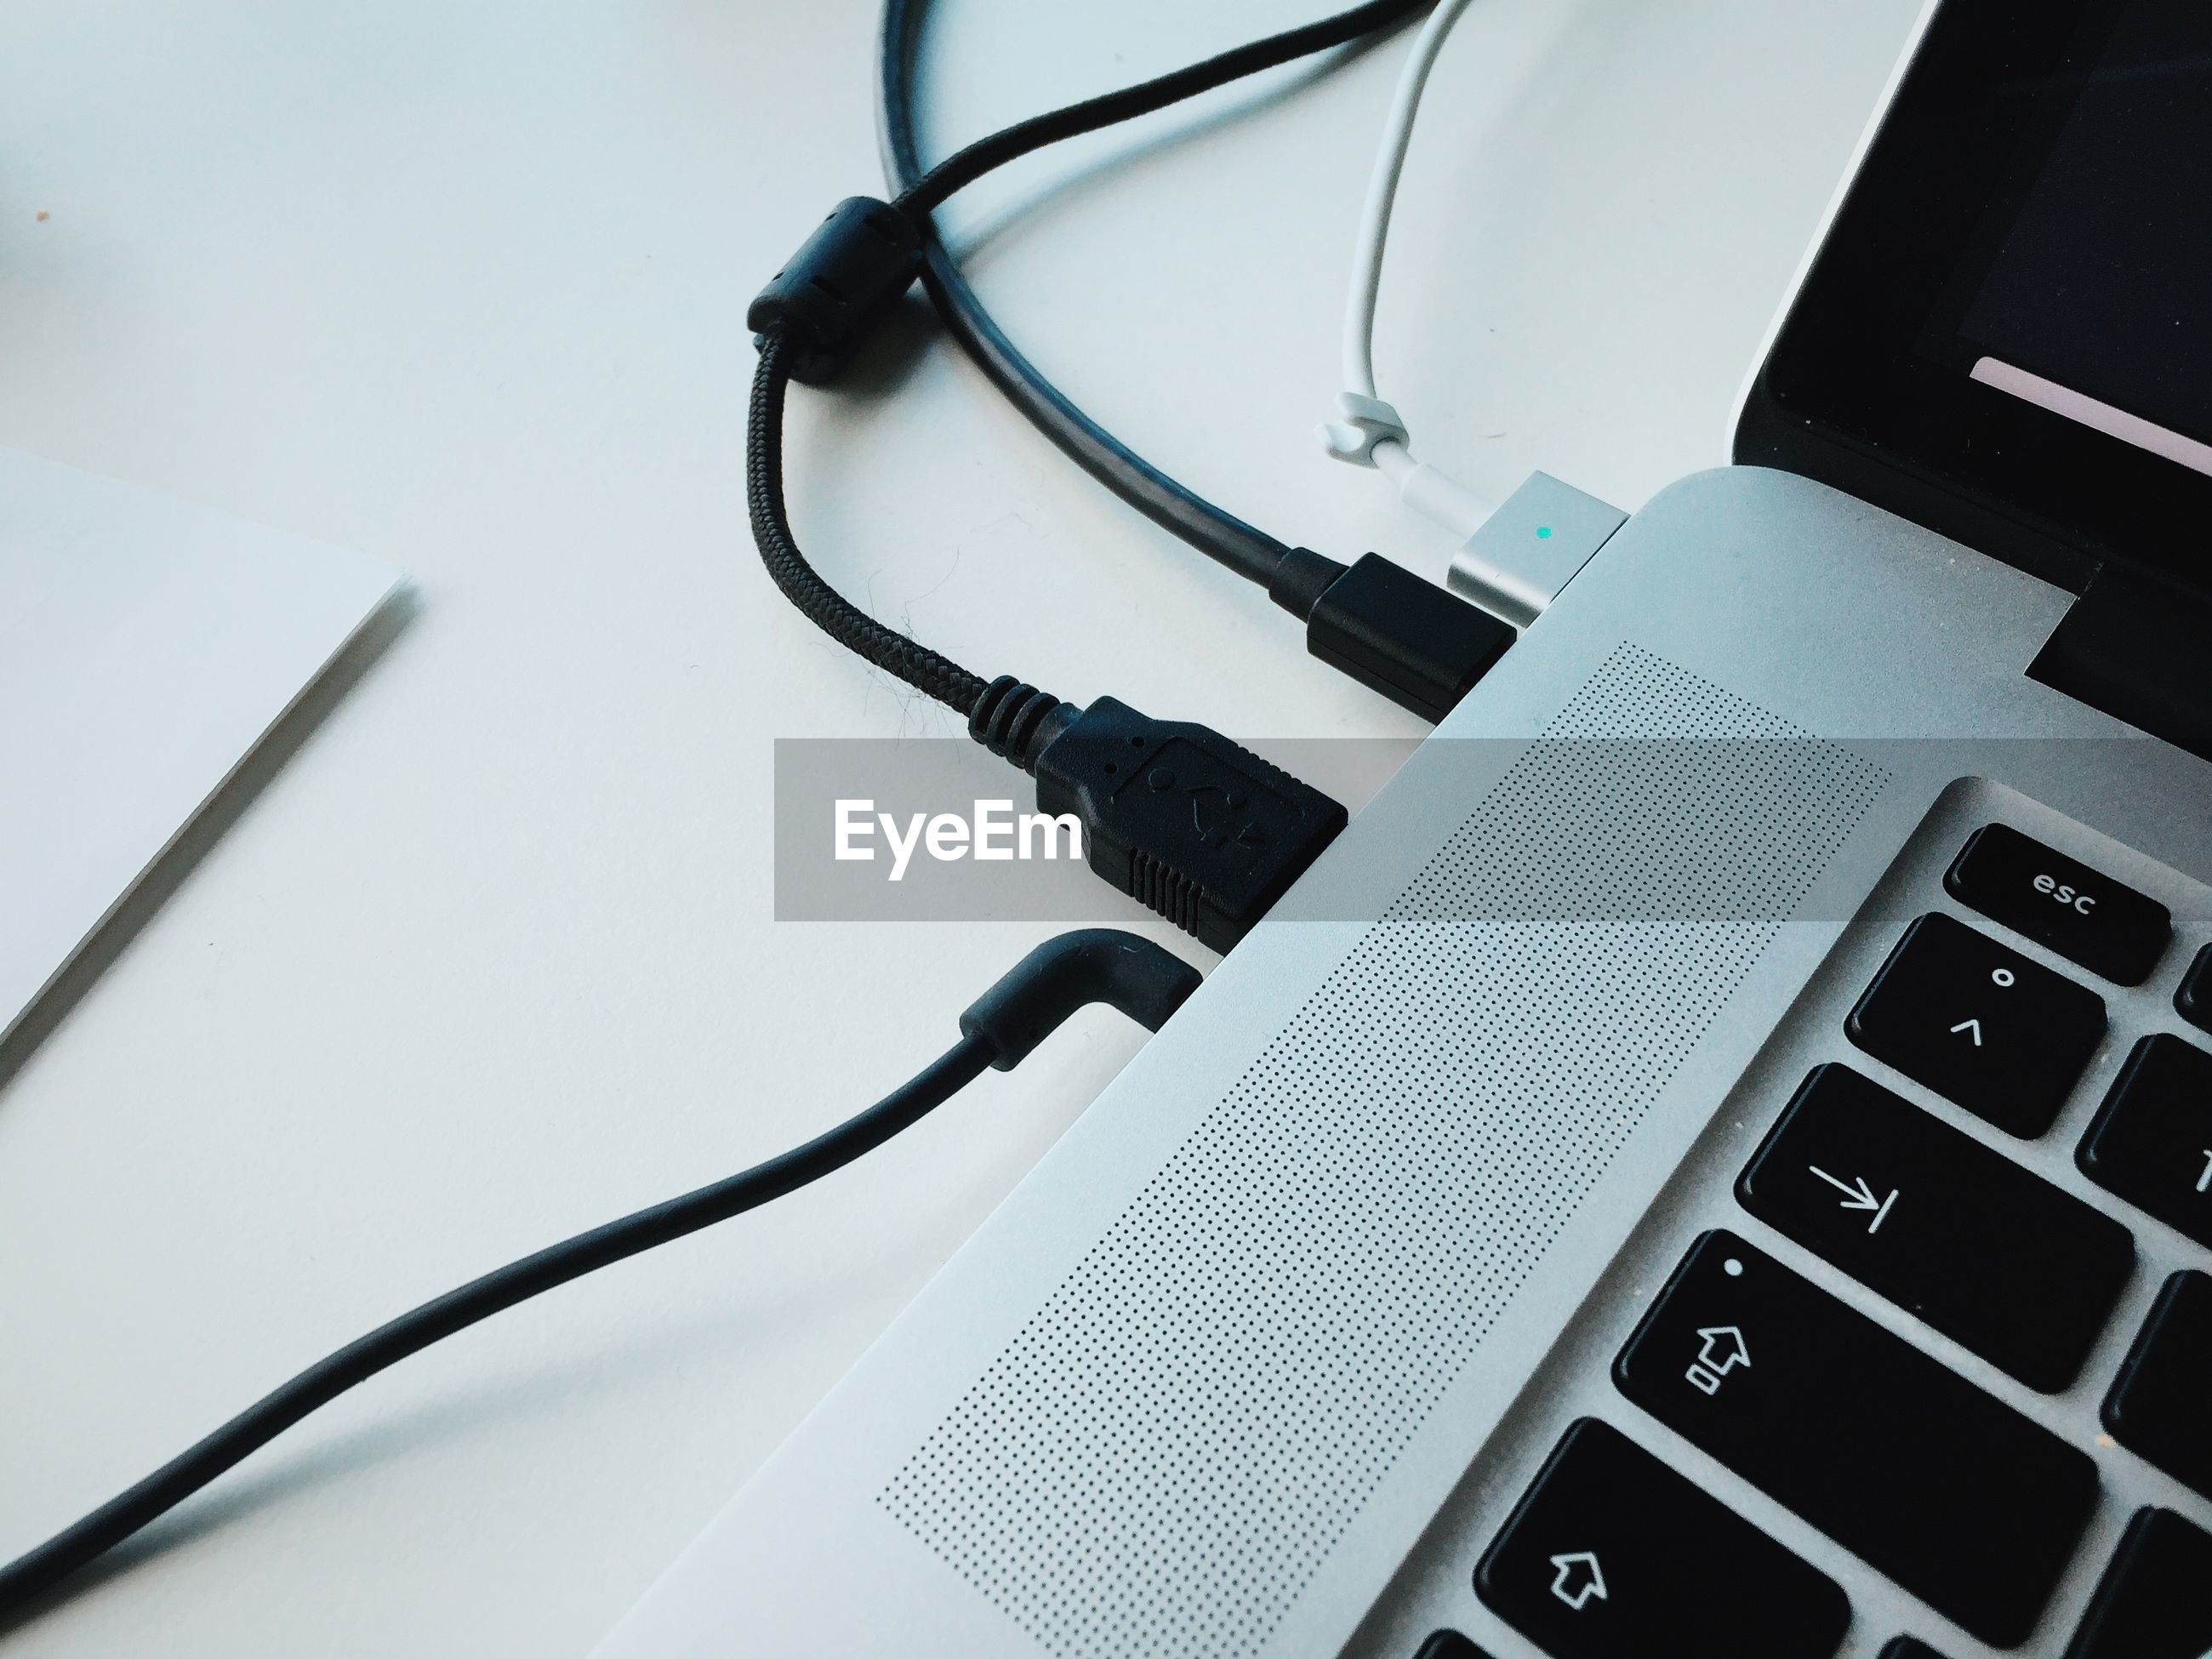 Close-up of usb cables attached to laptop on table